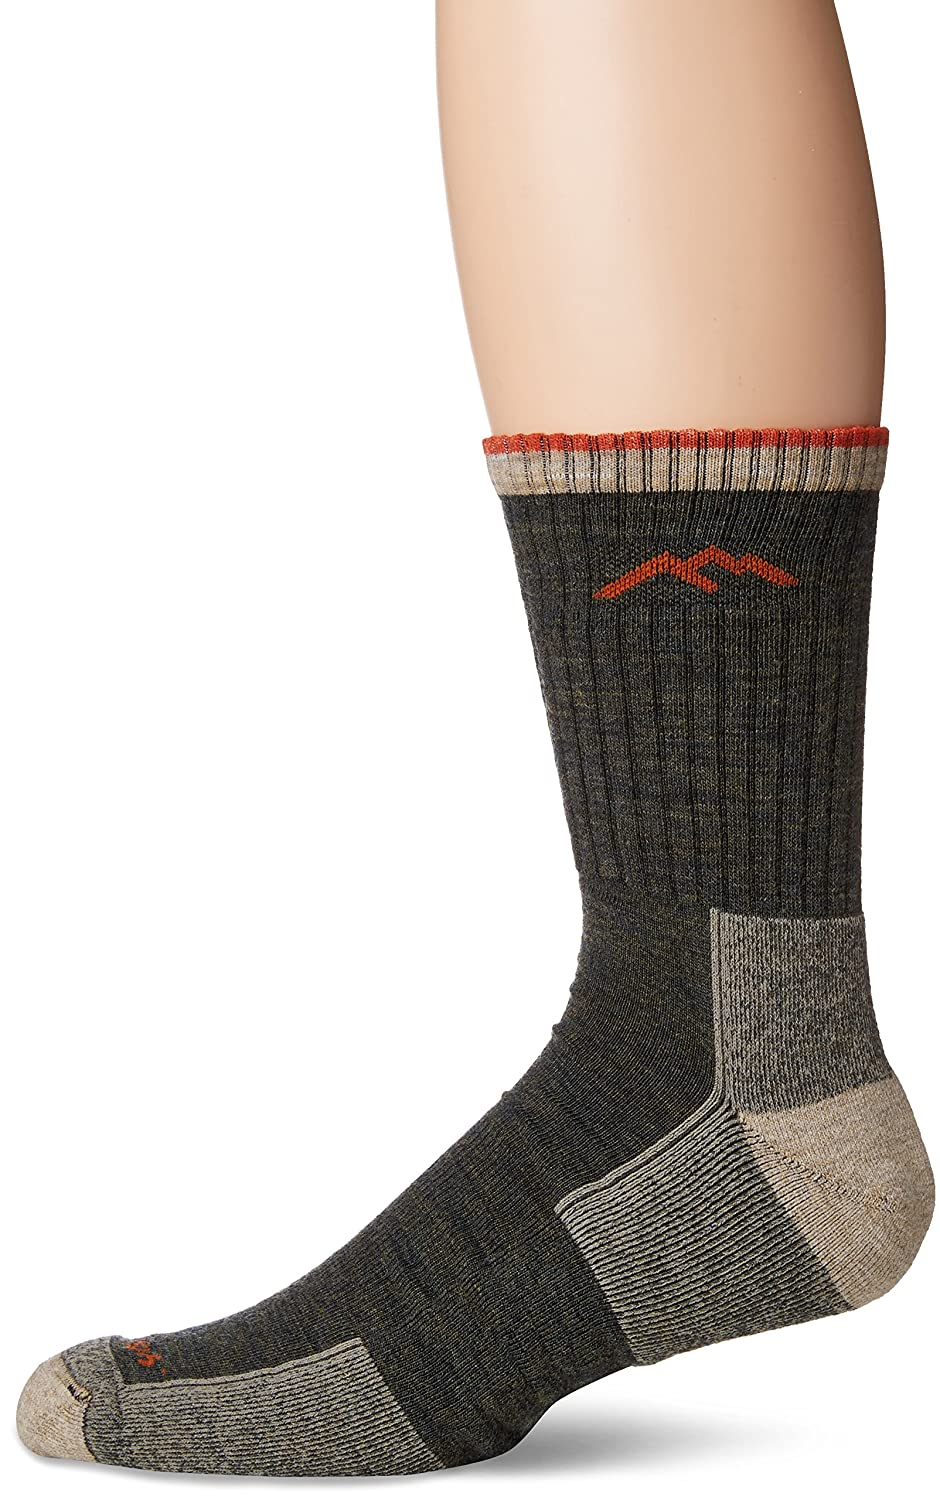 Darn Tough Hiker Micro Crew Cushion Socks - Men's Darn Tough Vermont 1466